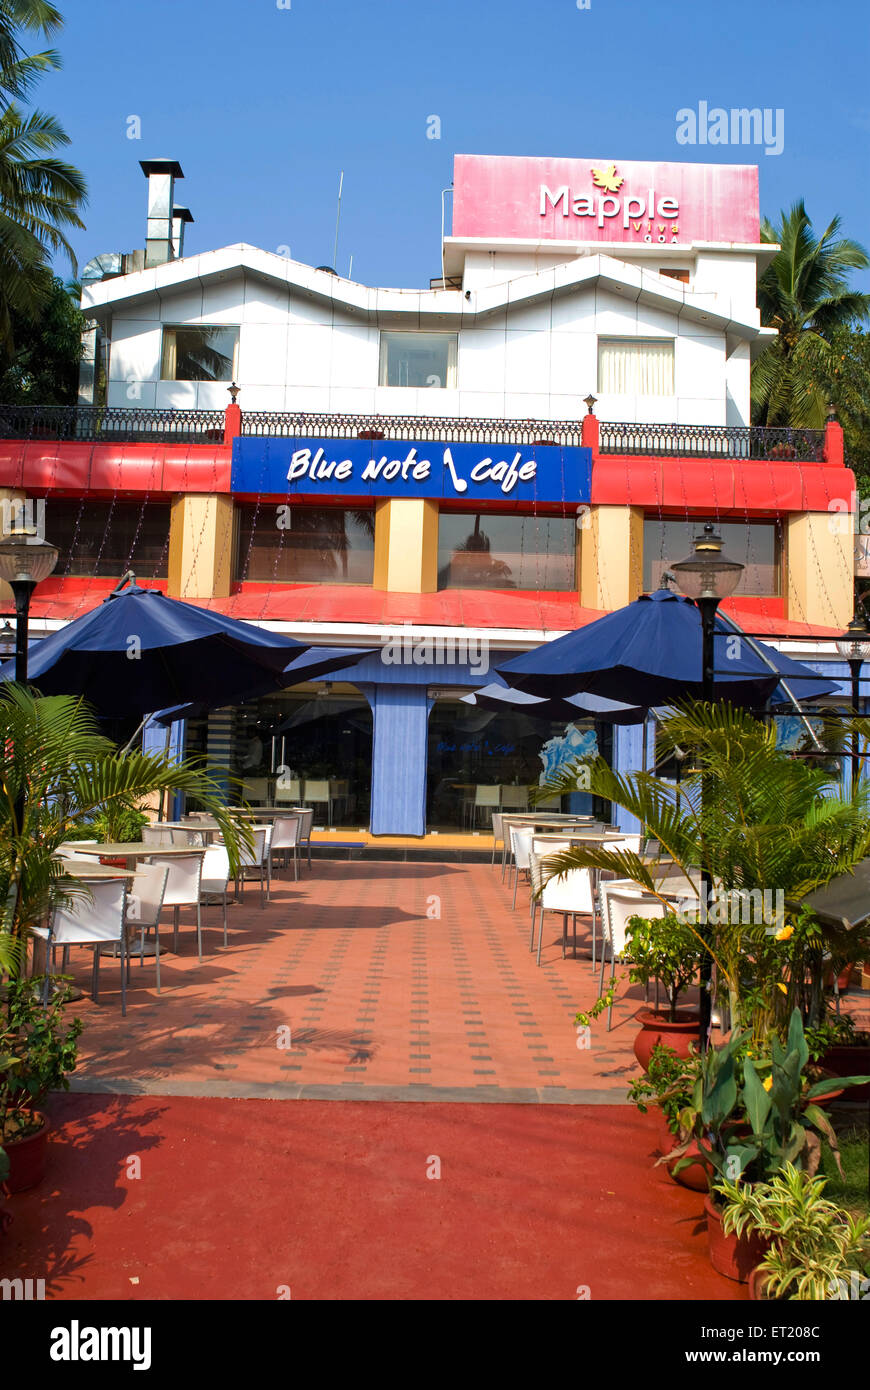 Blue note caf' ; Calangute beach ; Goa ; India - Stock Image